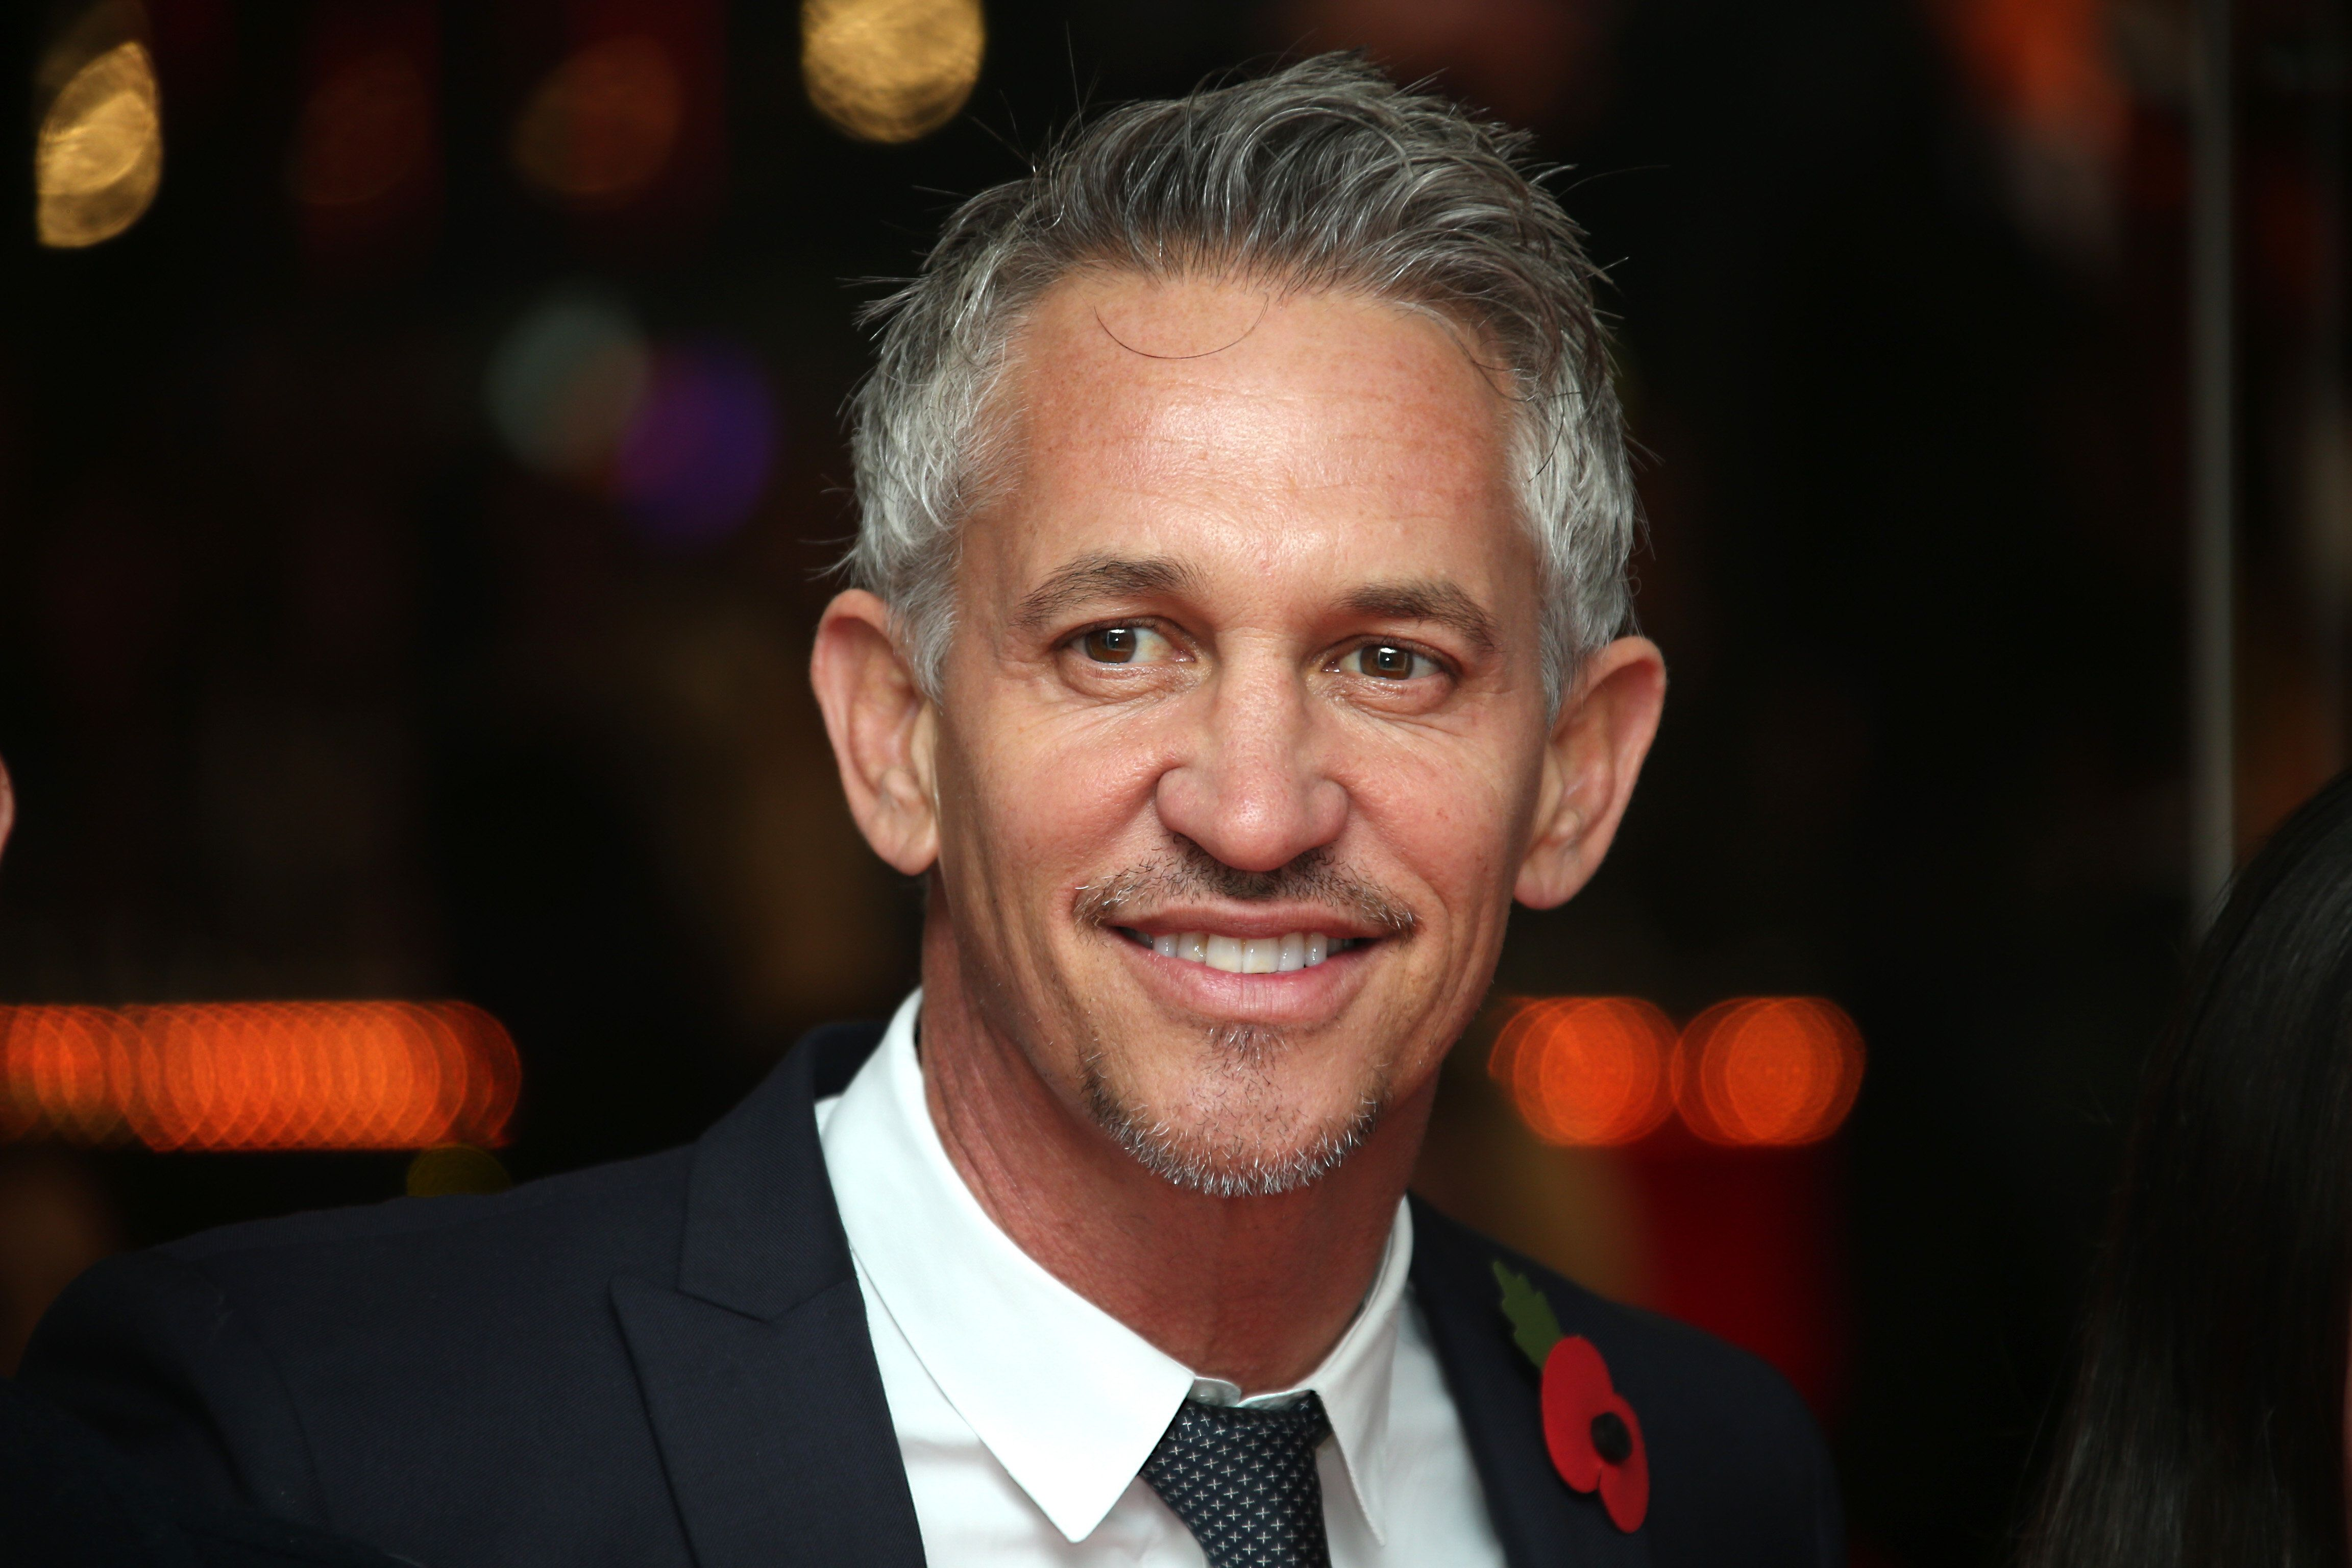 Gary Lineker On Son's Cancer Diagnosis And His Nightmare About Carrying A 'Small, White